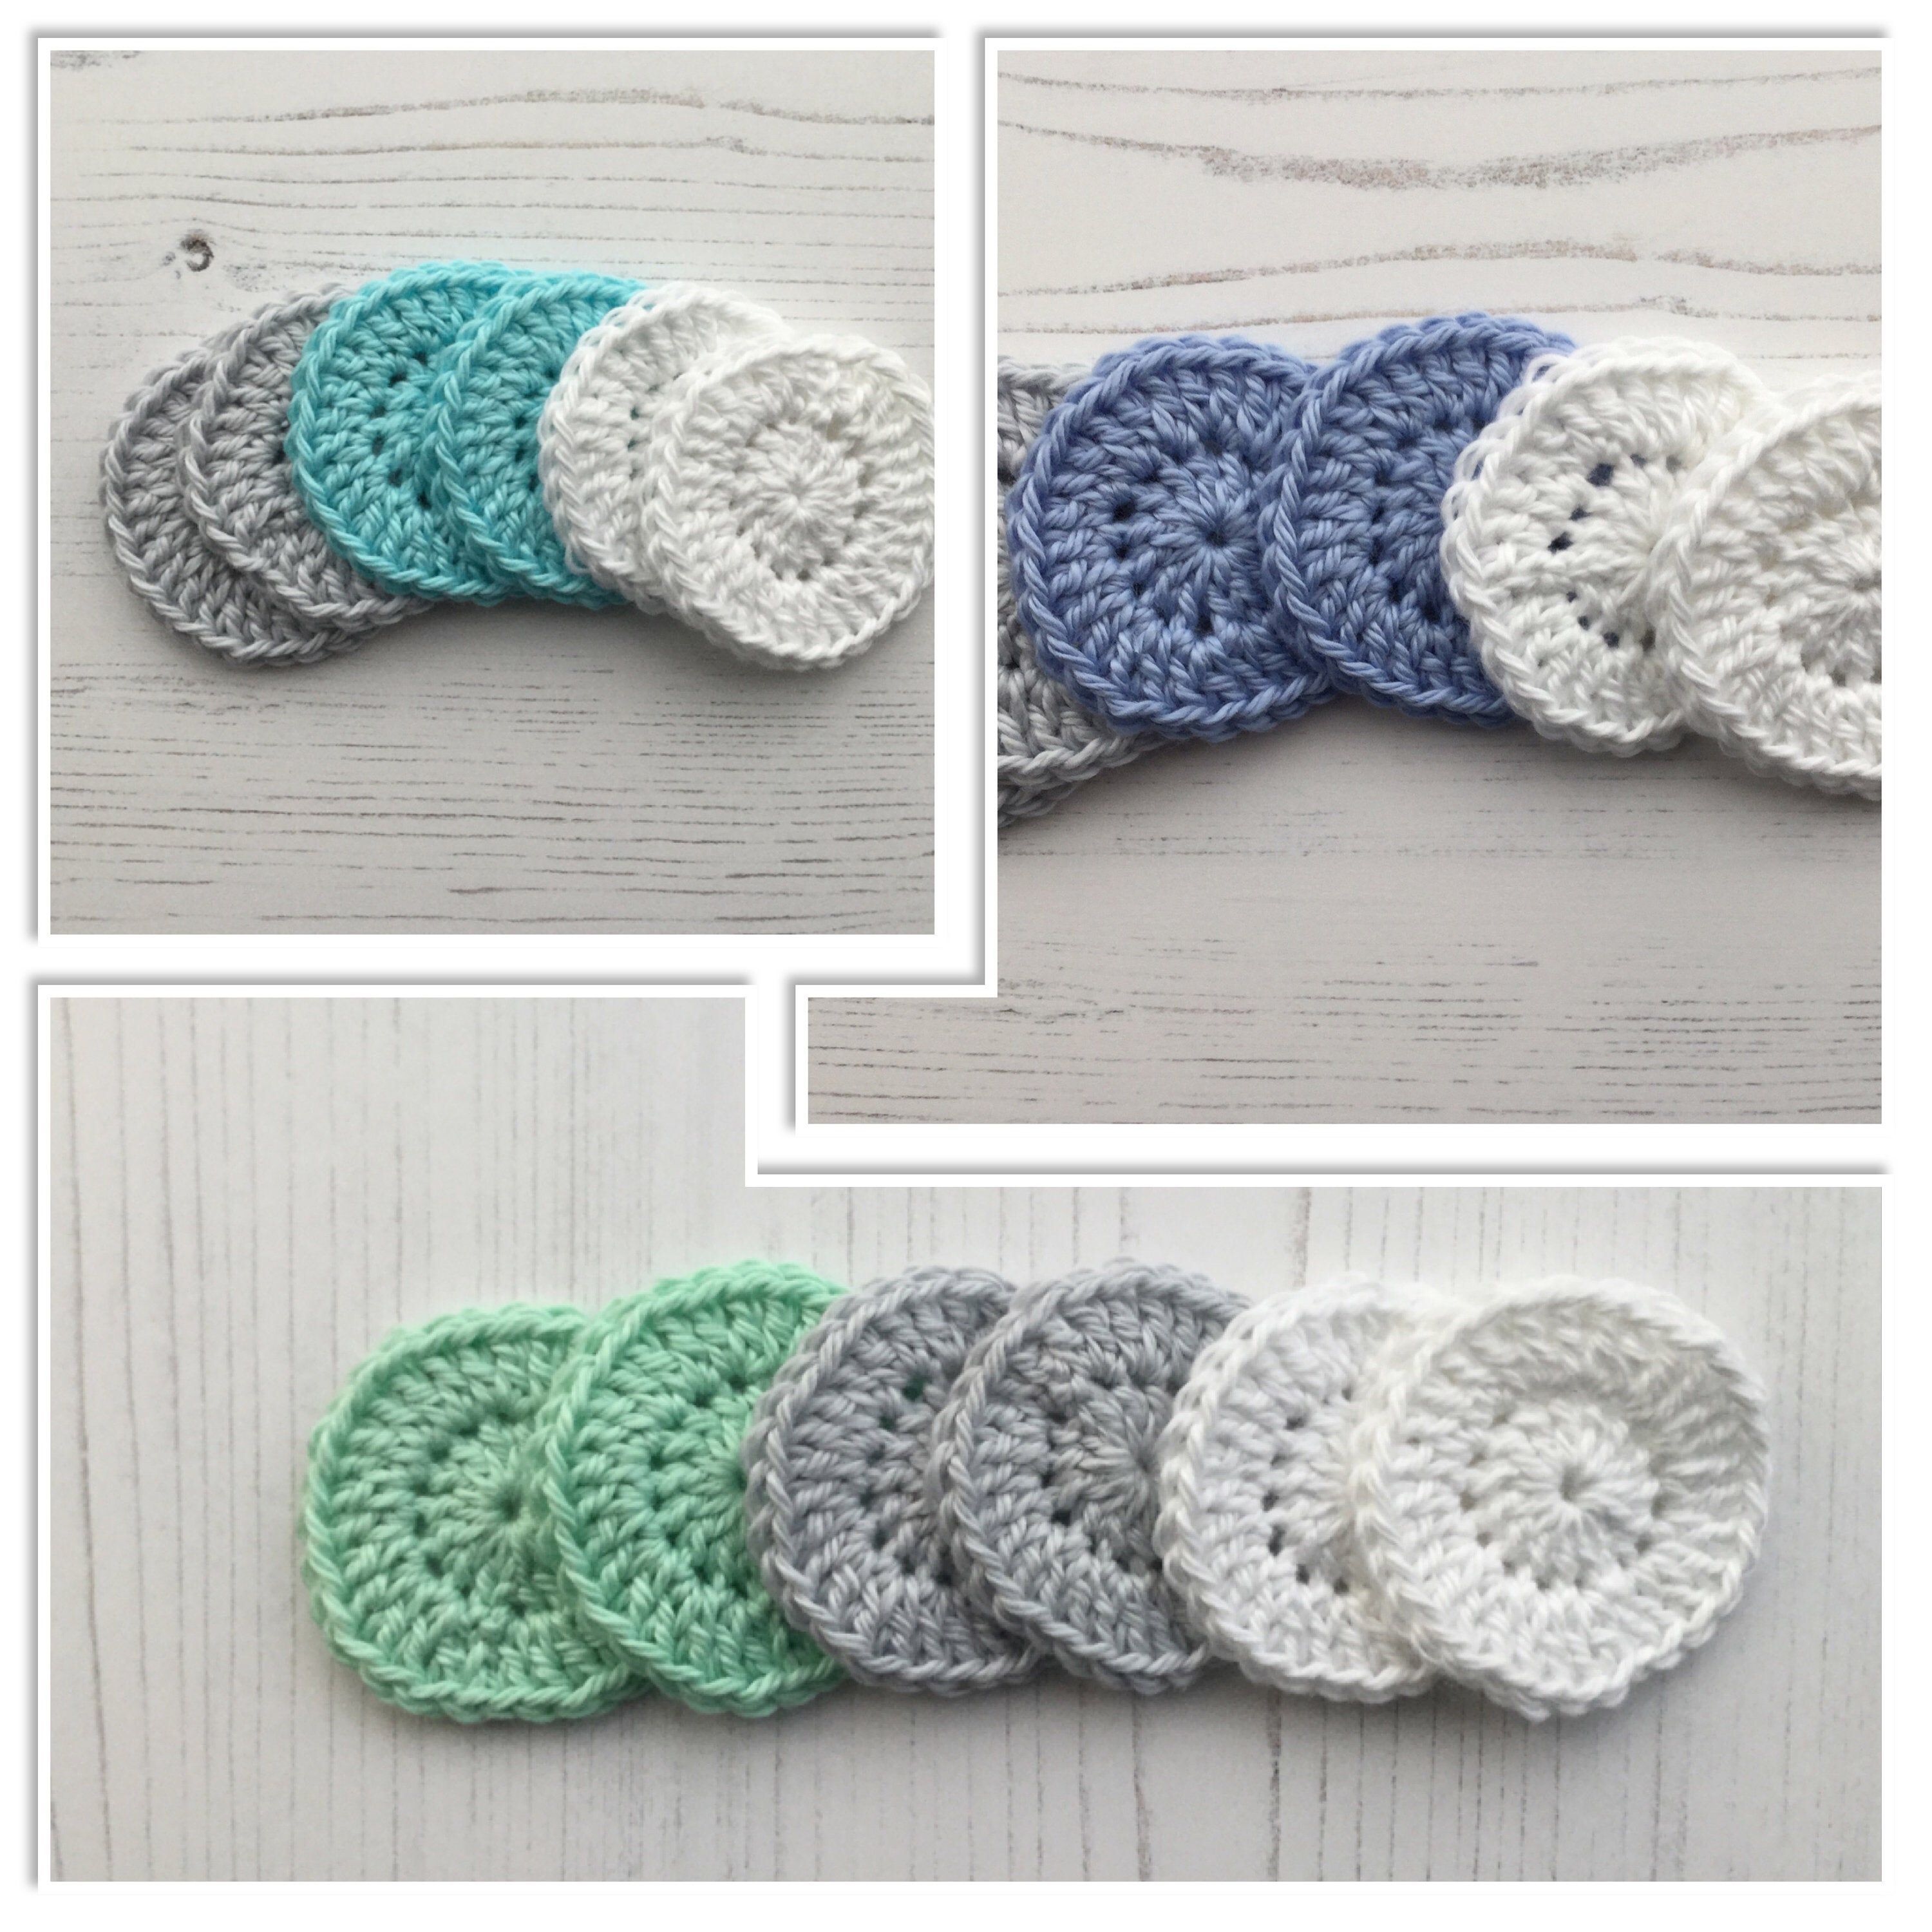 Crochet Reusable Makeup Remover Pads in Cotton by